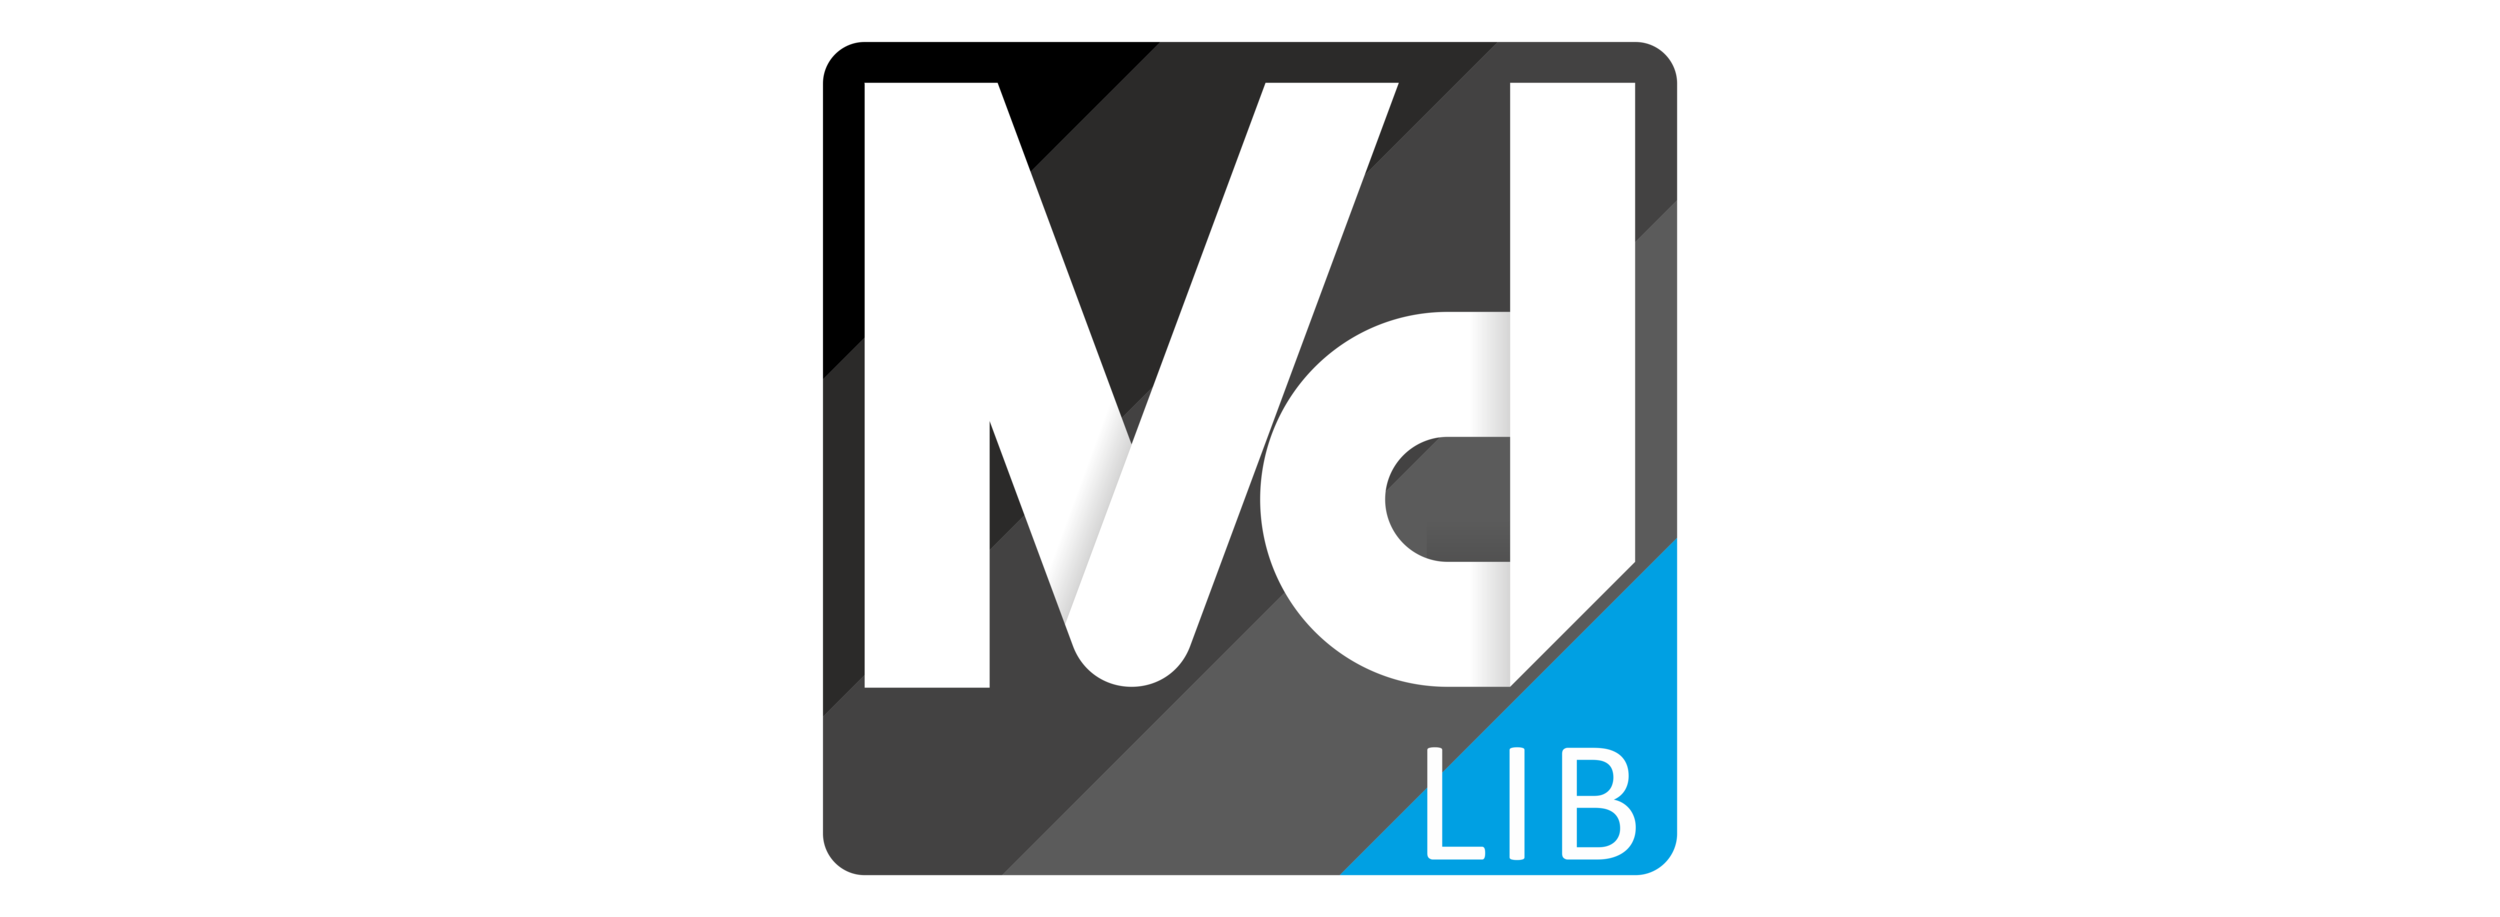 motiondetector_wide_logo.png